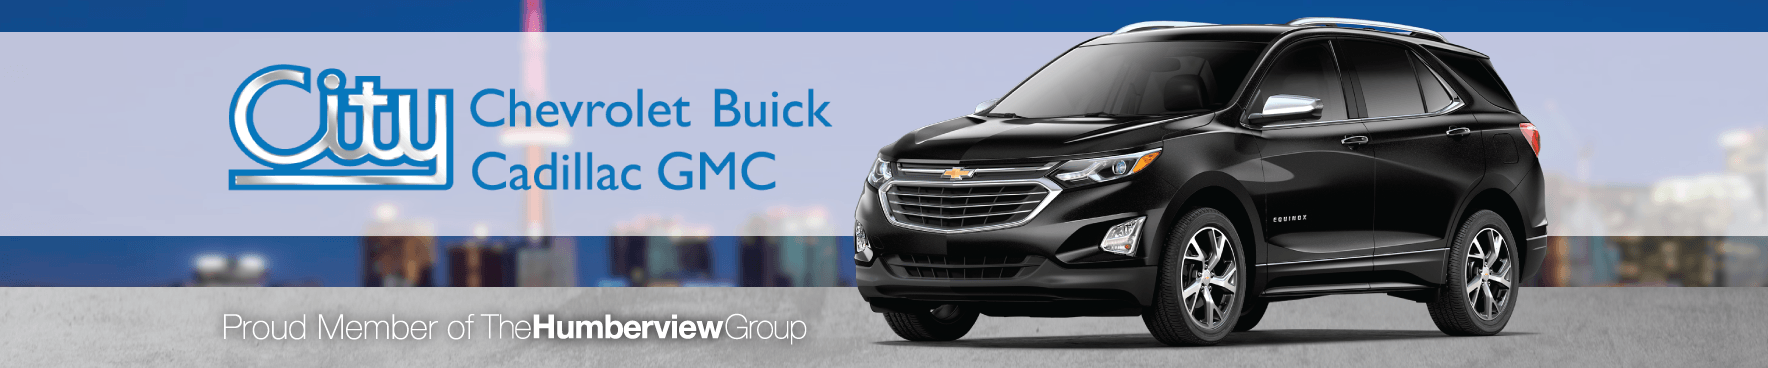 City Buick Chevrolet Cadillac GMC dealer in Toronto